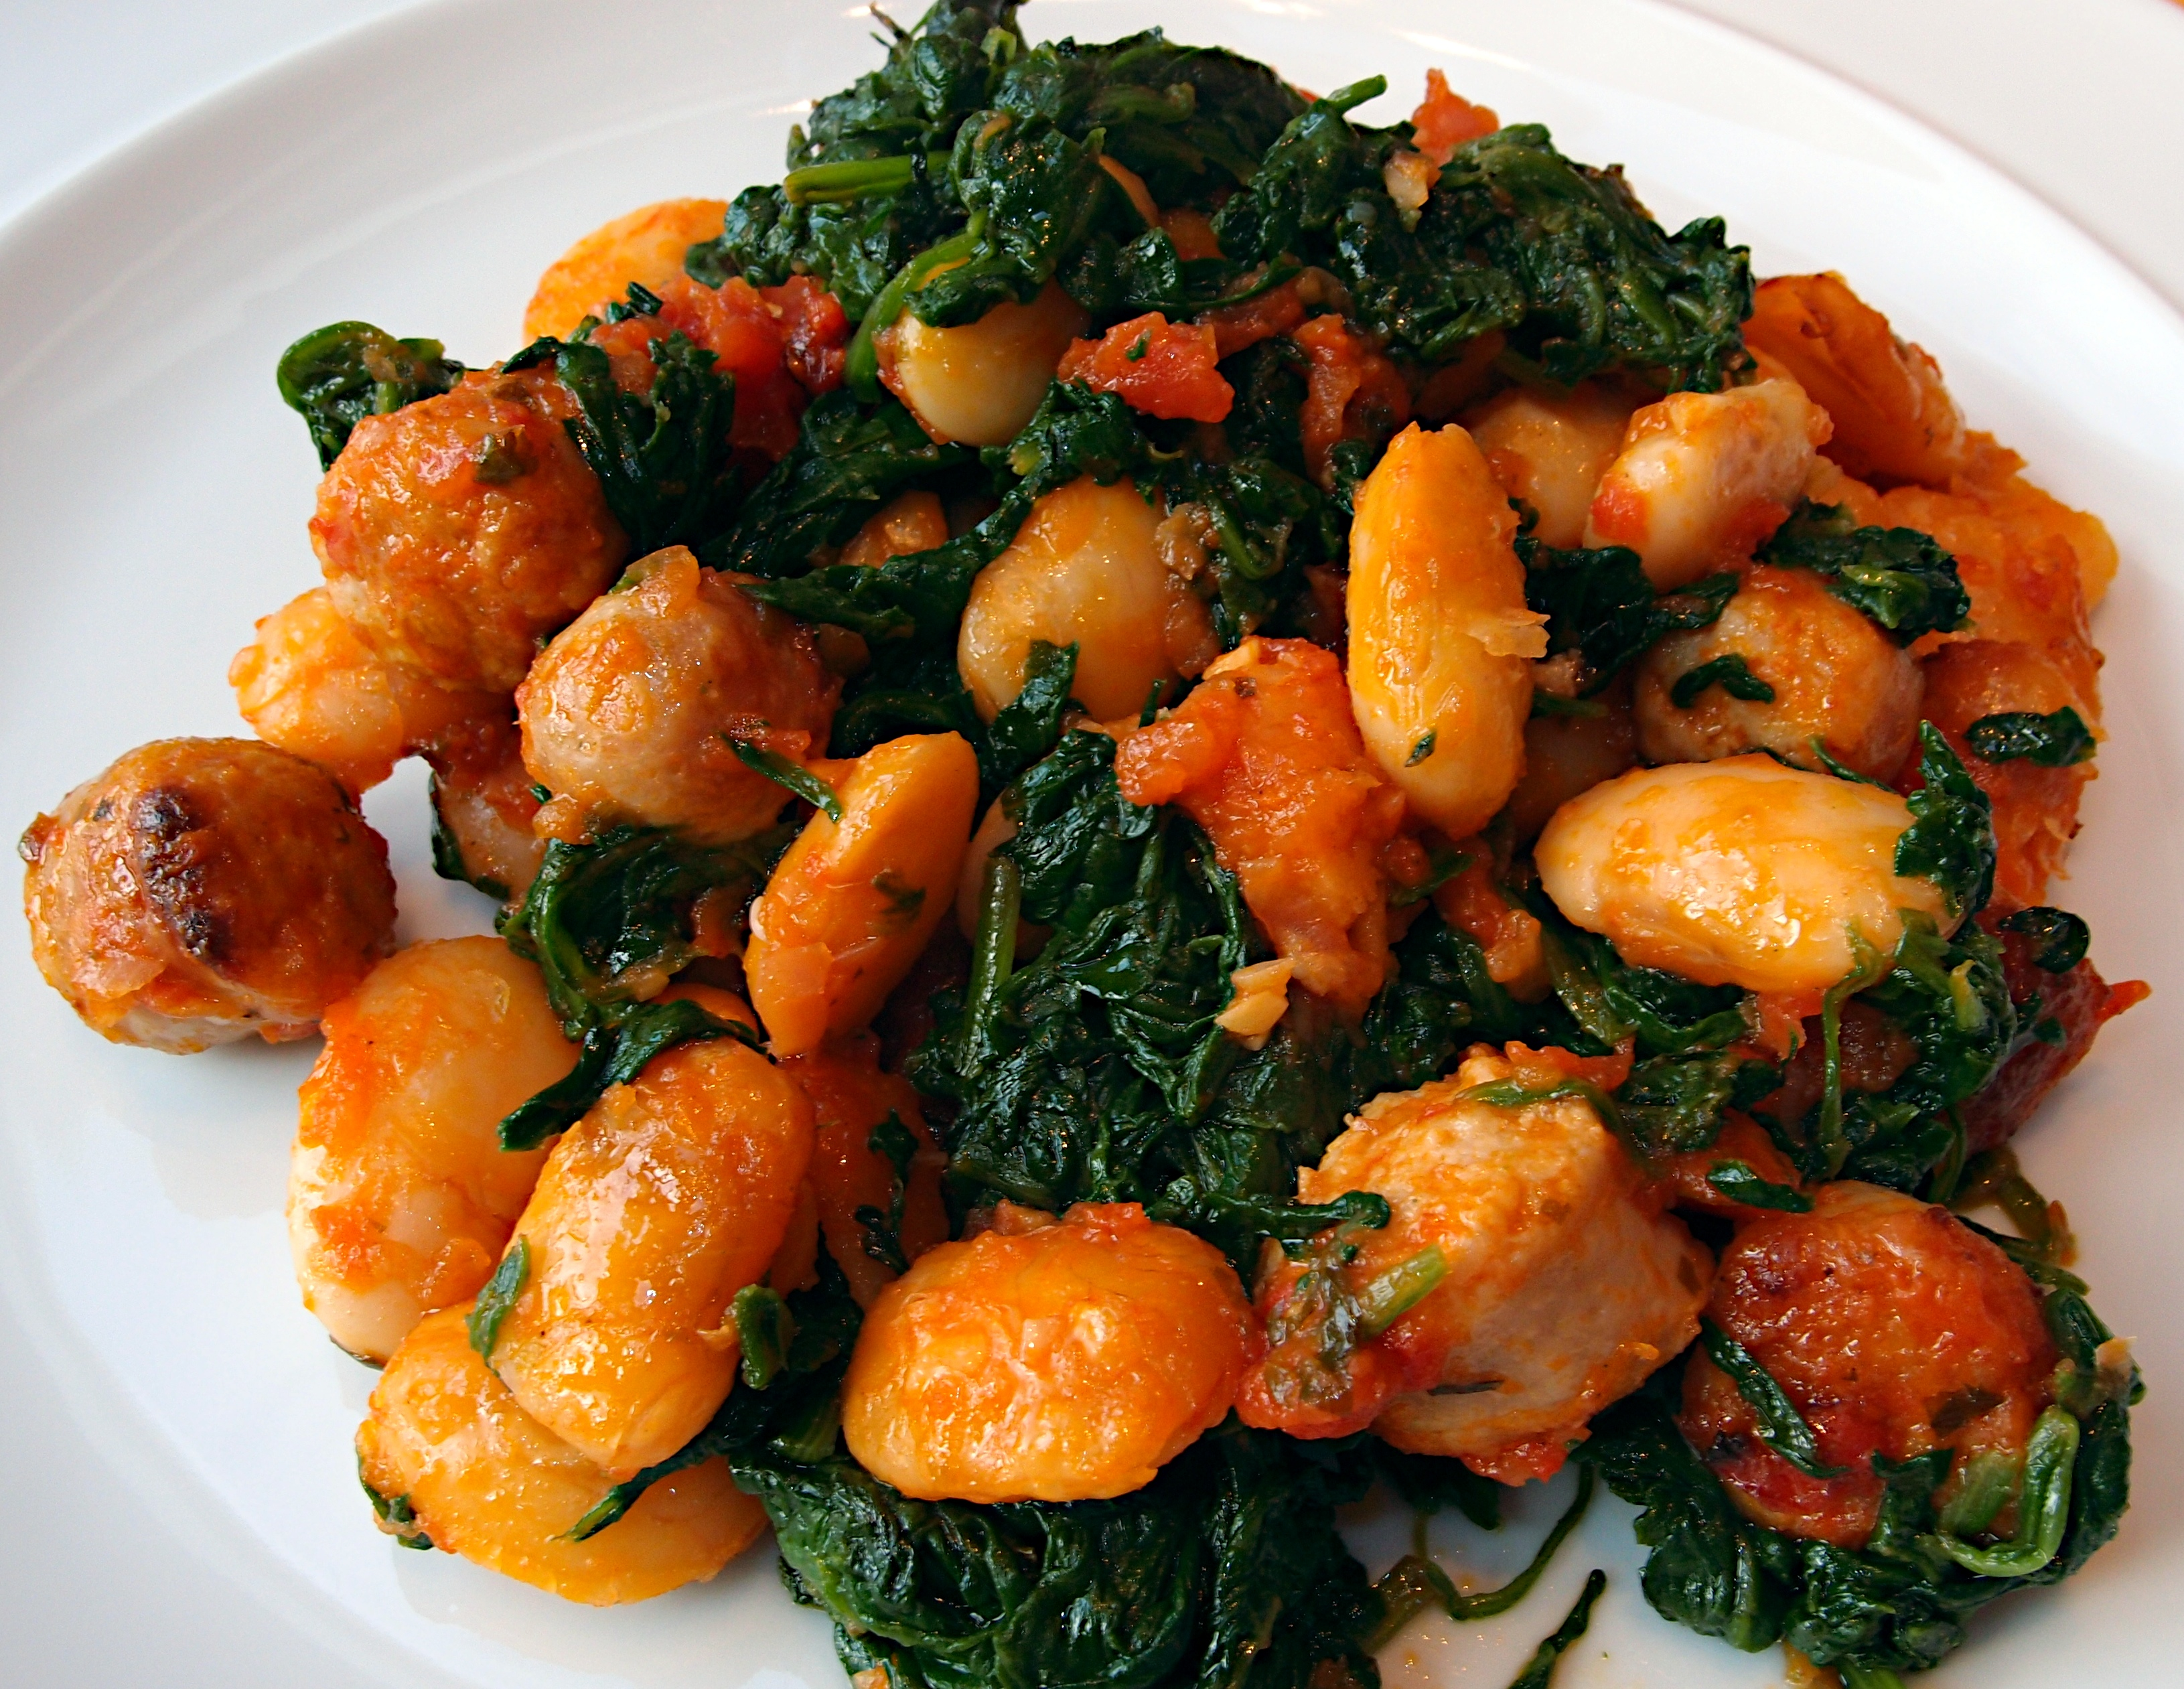 Bean Spinach And Sausage Casserole